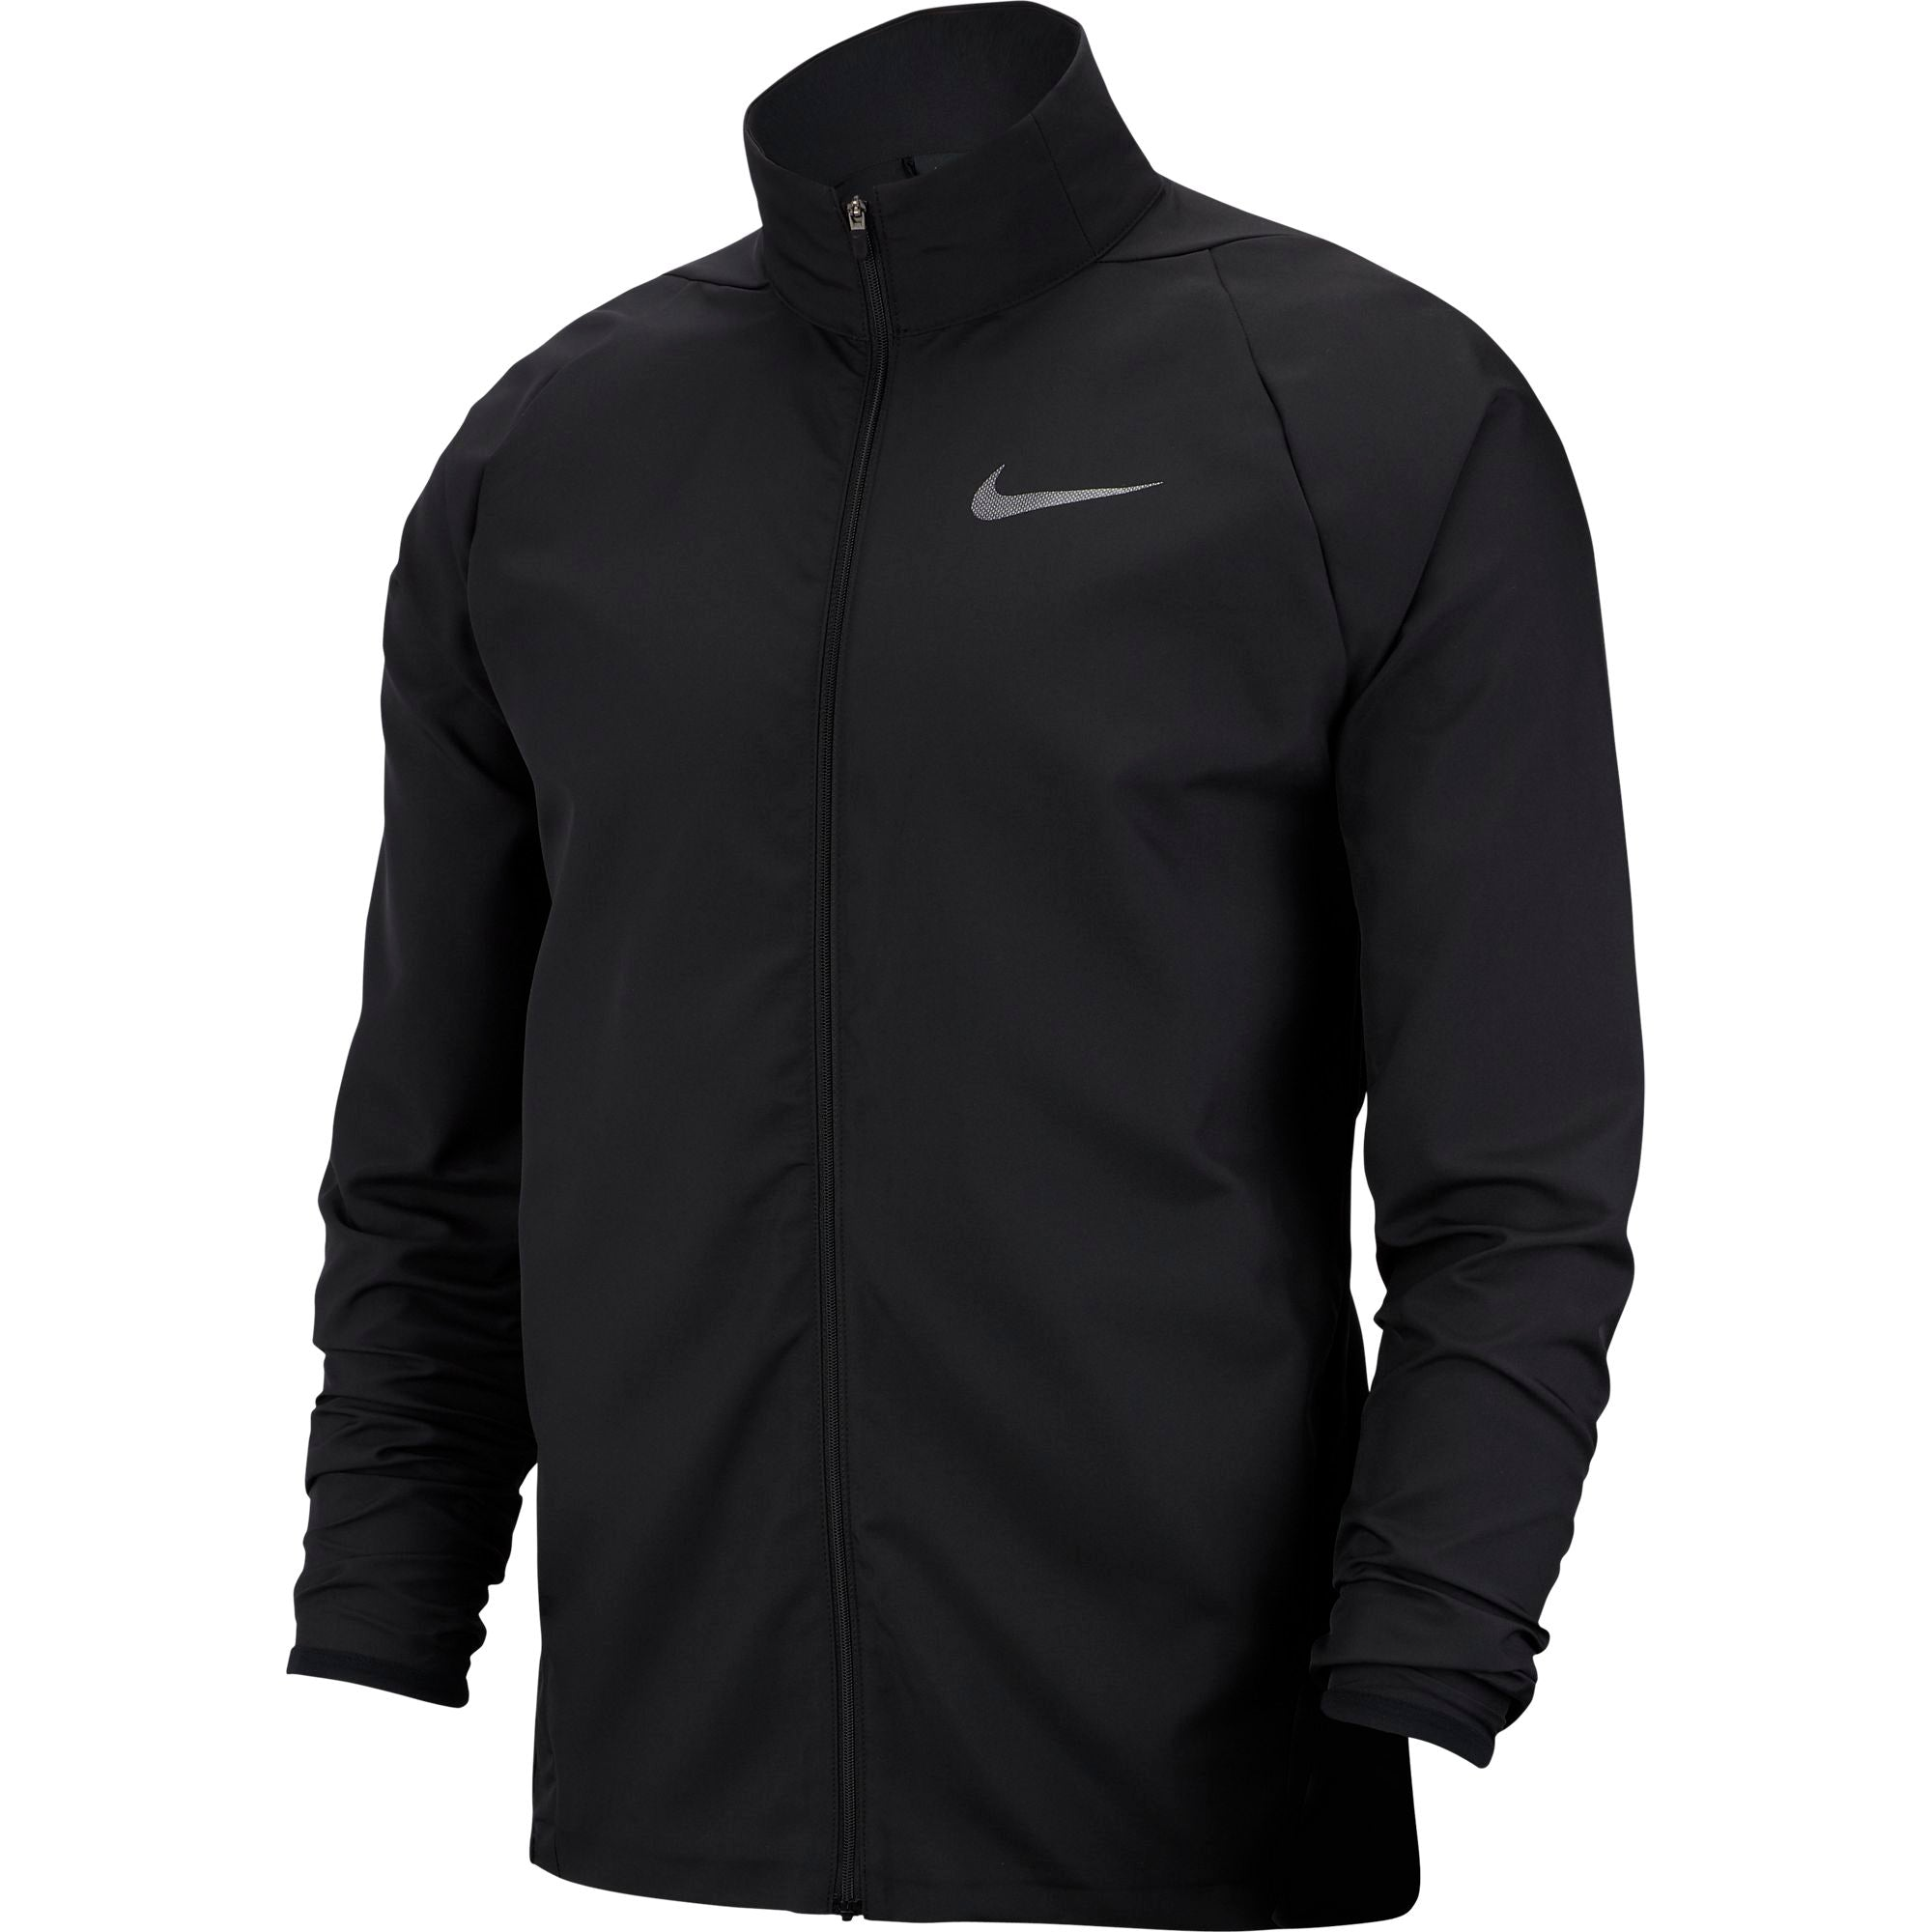 Planeta Escoger Descripción del negocio  Nike Training Dri-fit Woven Jacket (Tall Fit) - Black/Metallic Hematit –  SwiSh basketball